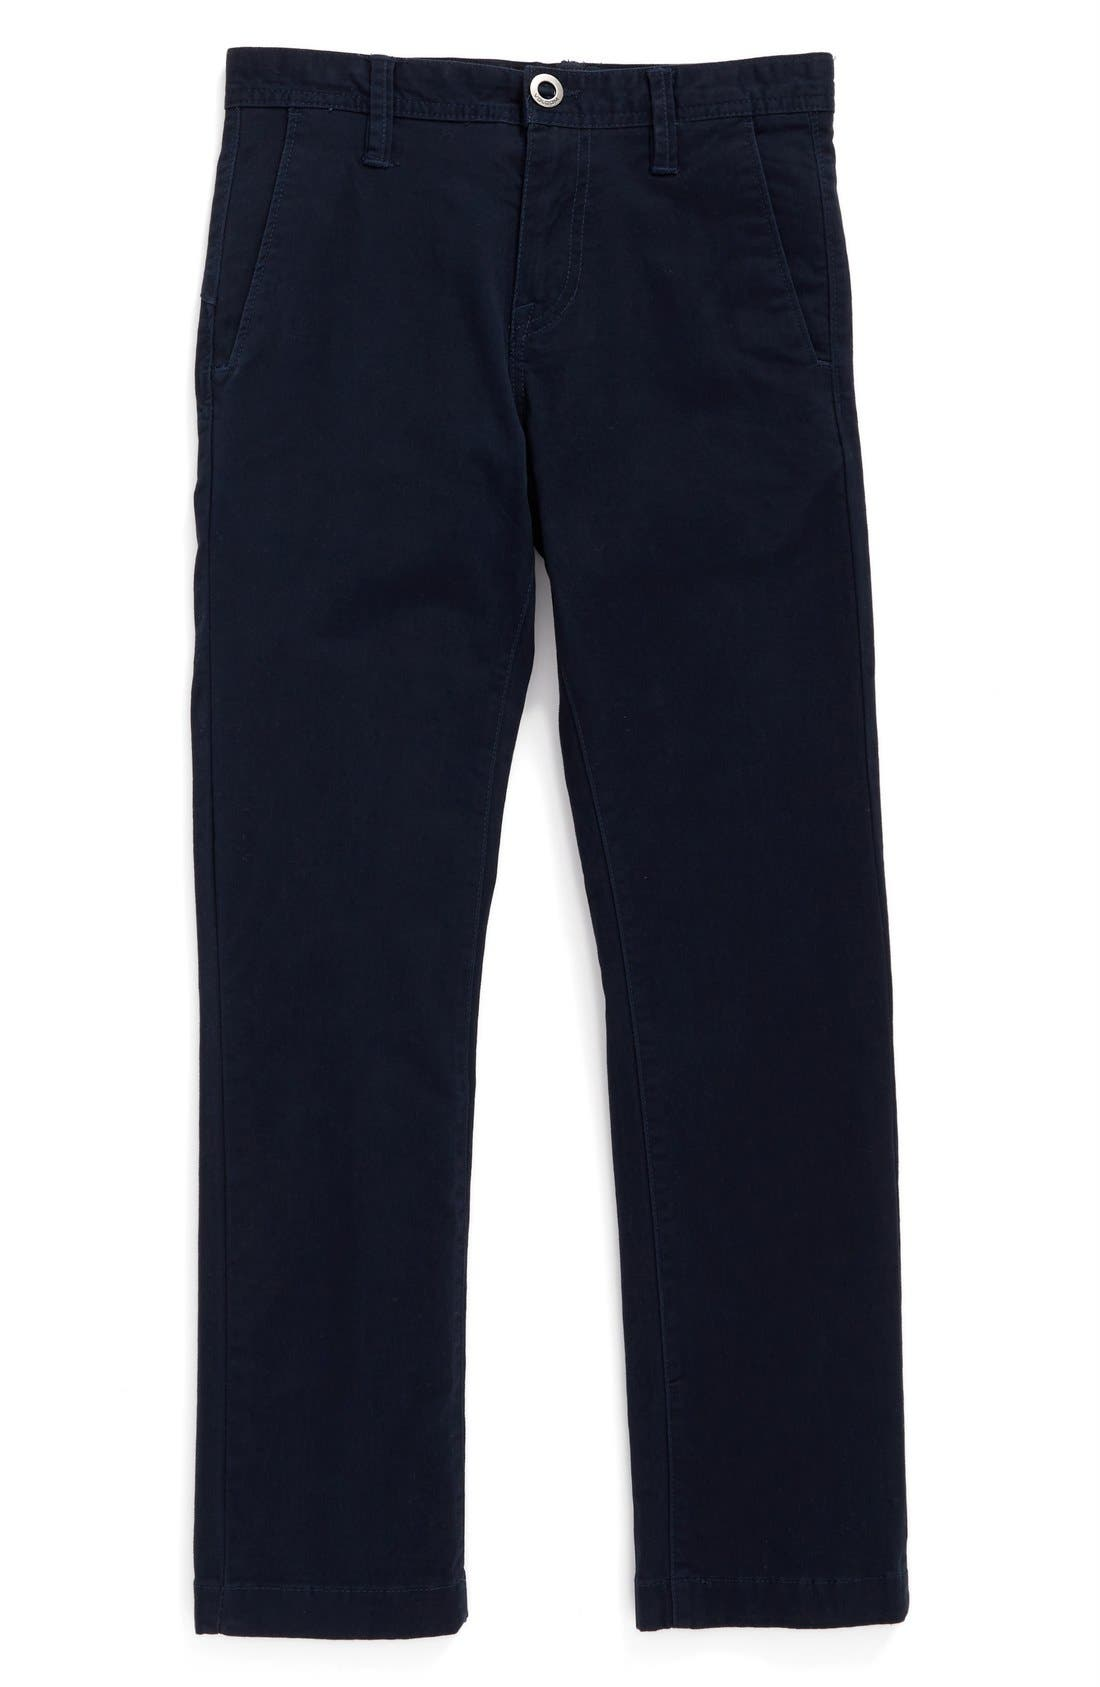 Volcom Slim Fit Stretch Chinos (Toddler Boys, Little Boys & Big Boys)